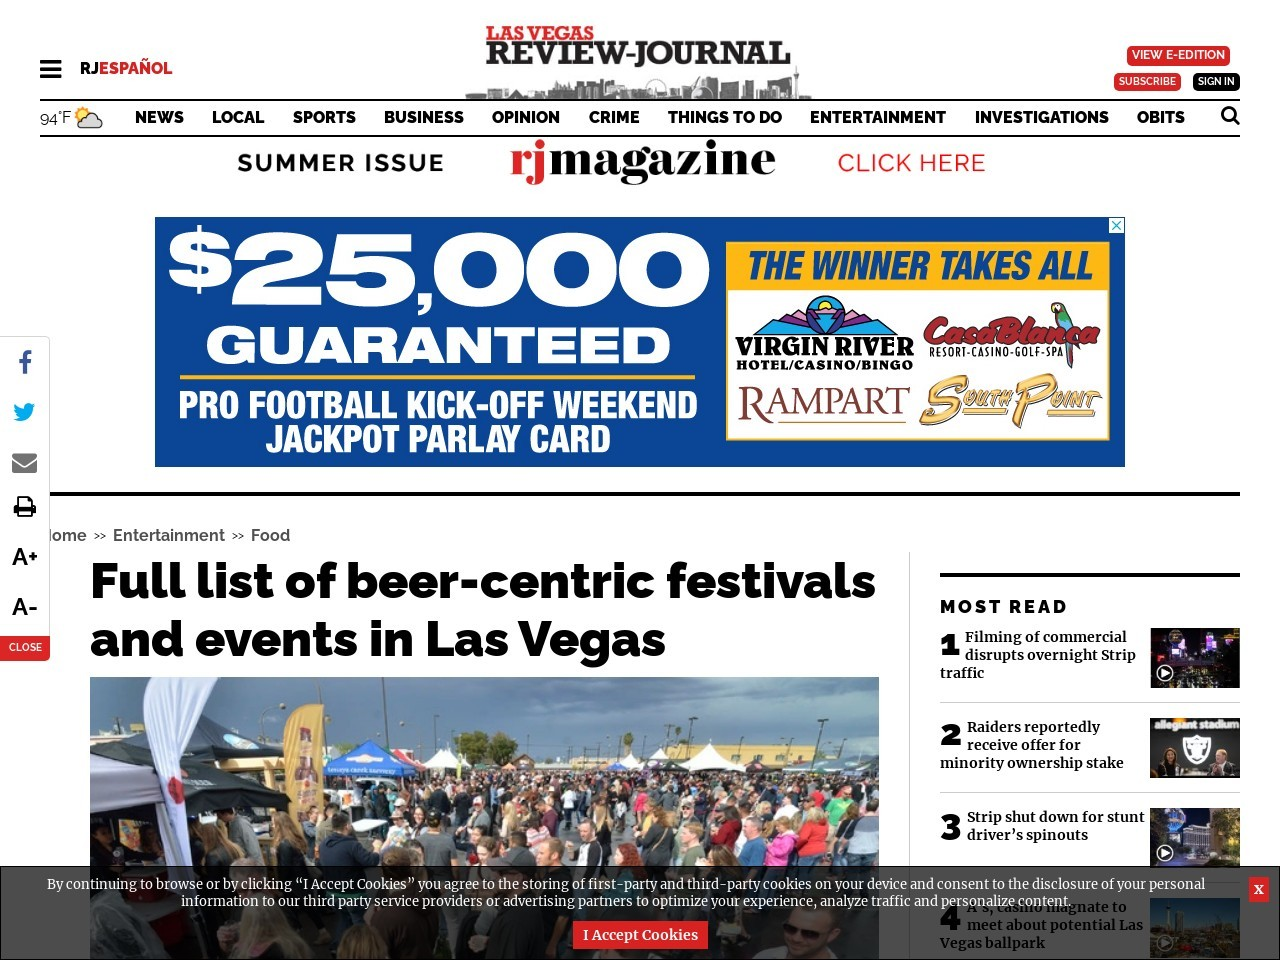 Full list of beer-centric festivals and events in Las Vegas